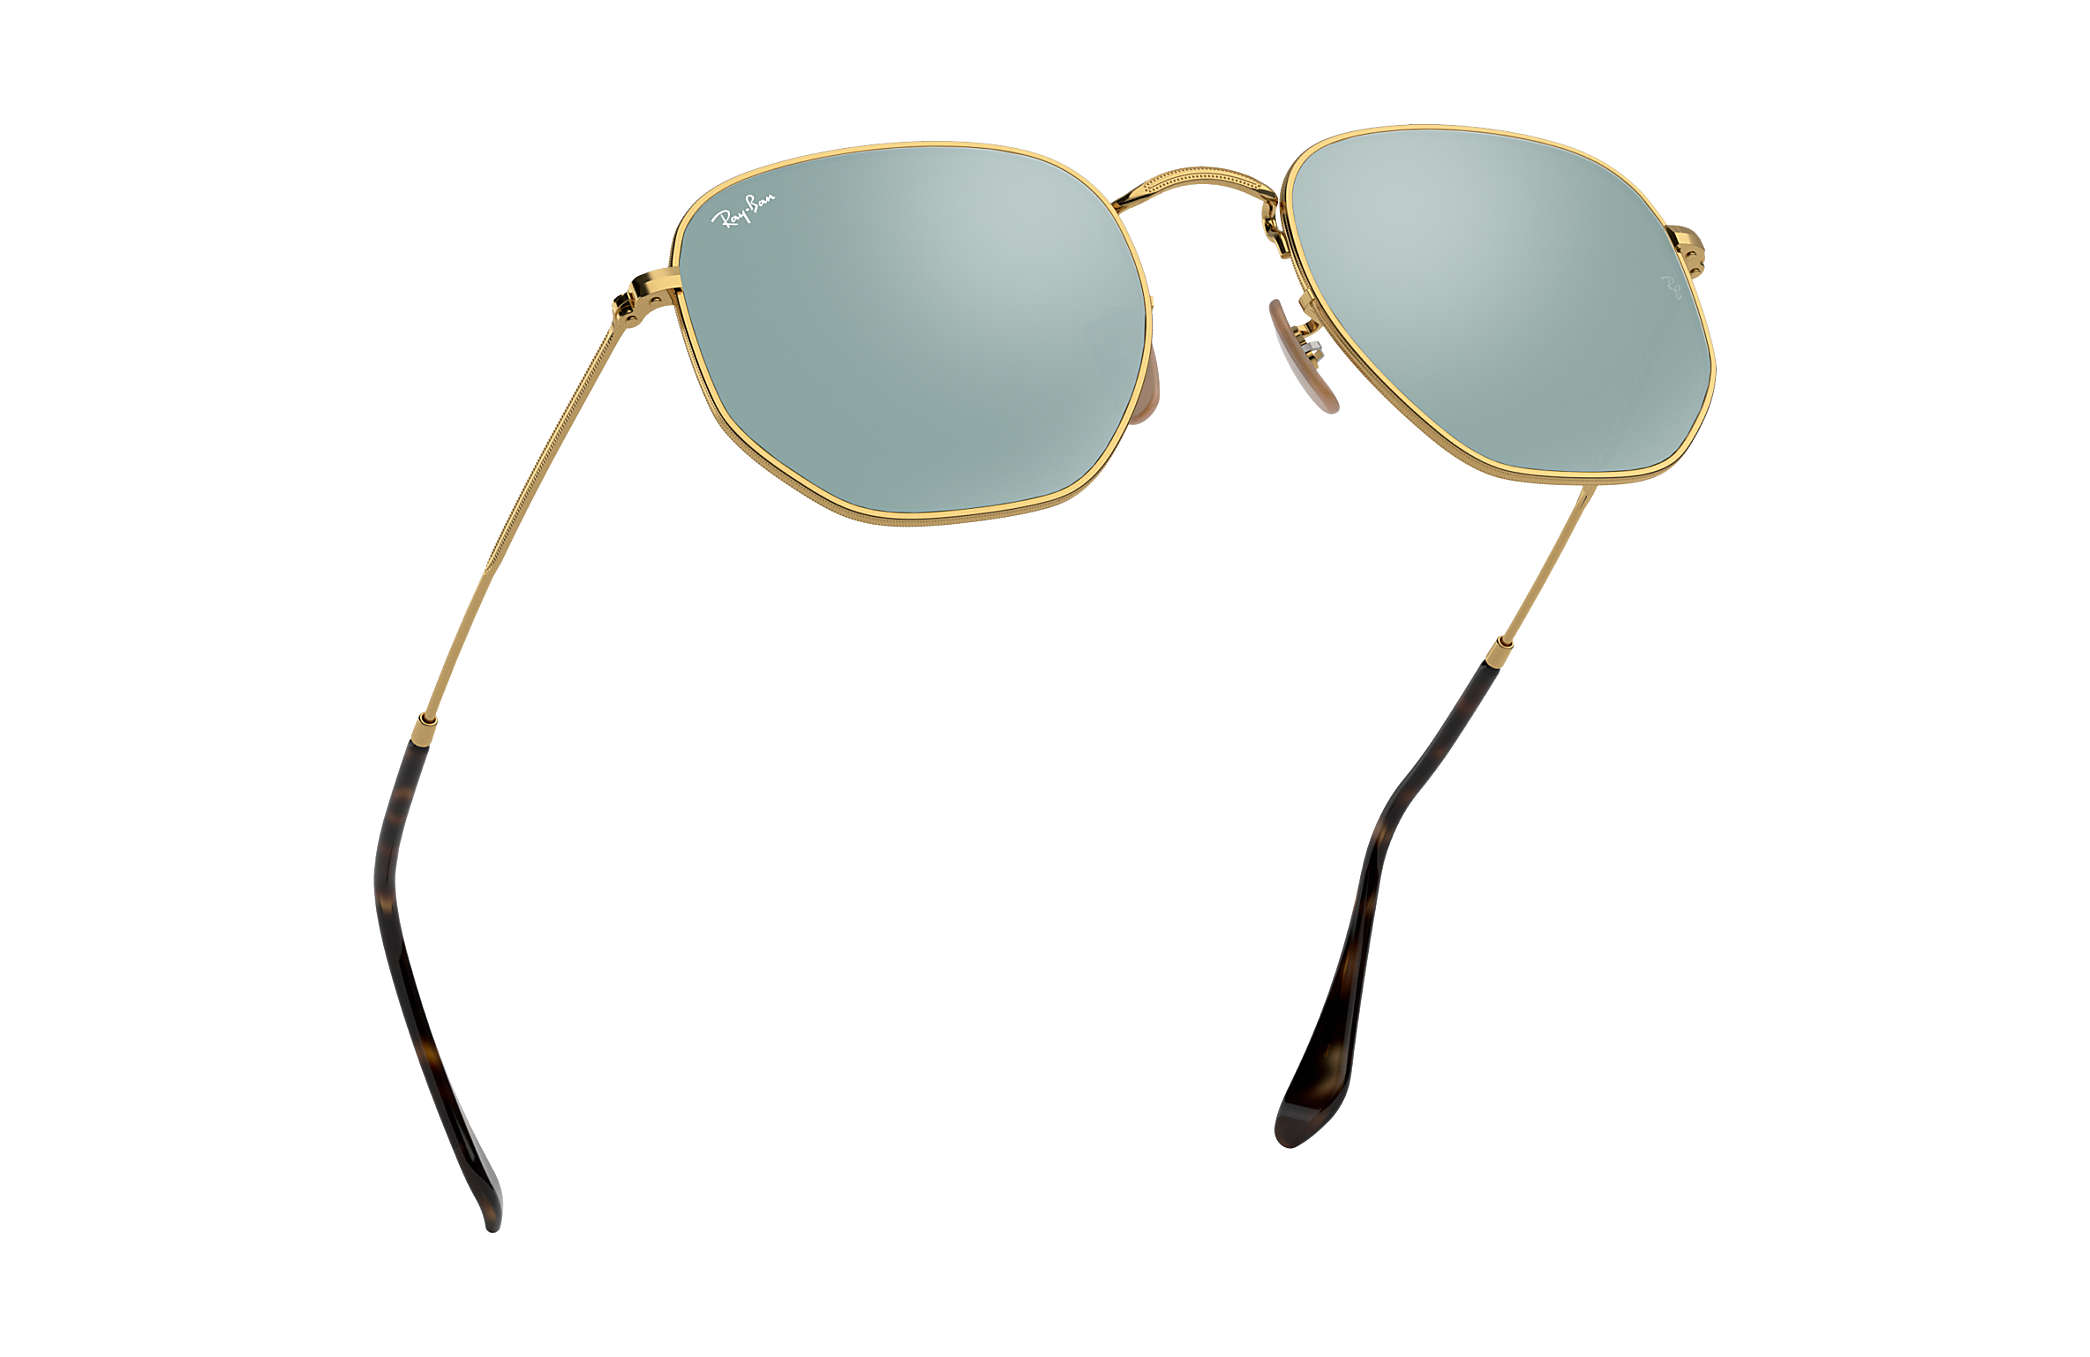 6a28d4bee Ray-Ban Hexagonal Flat Lenses RB3548N Gold - Metal - Silver Lenses ...